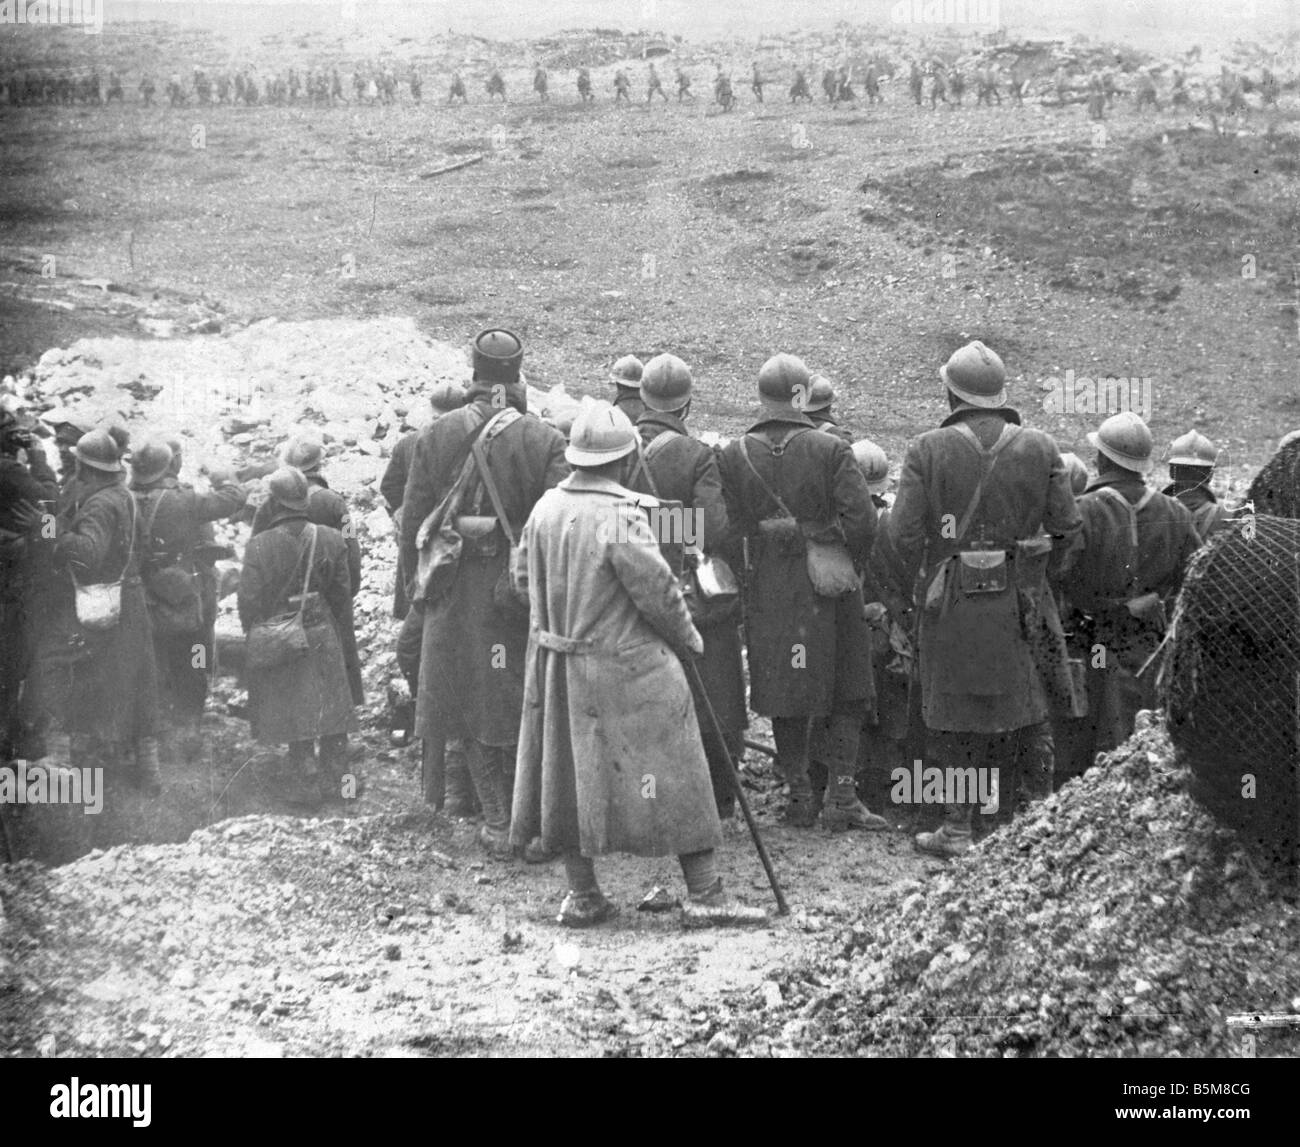 2 G55 F1 1916 19 WWI Senegalese Auxiliary Troups History WWI France Battle for the Tank Fortress Thiaumont at Verdun - Stock Image